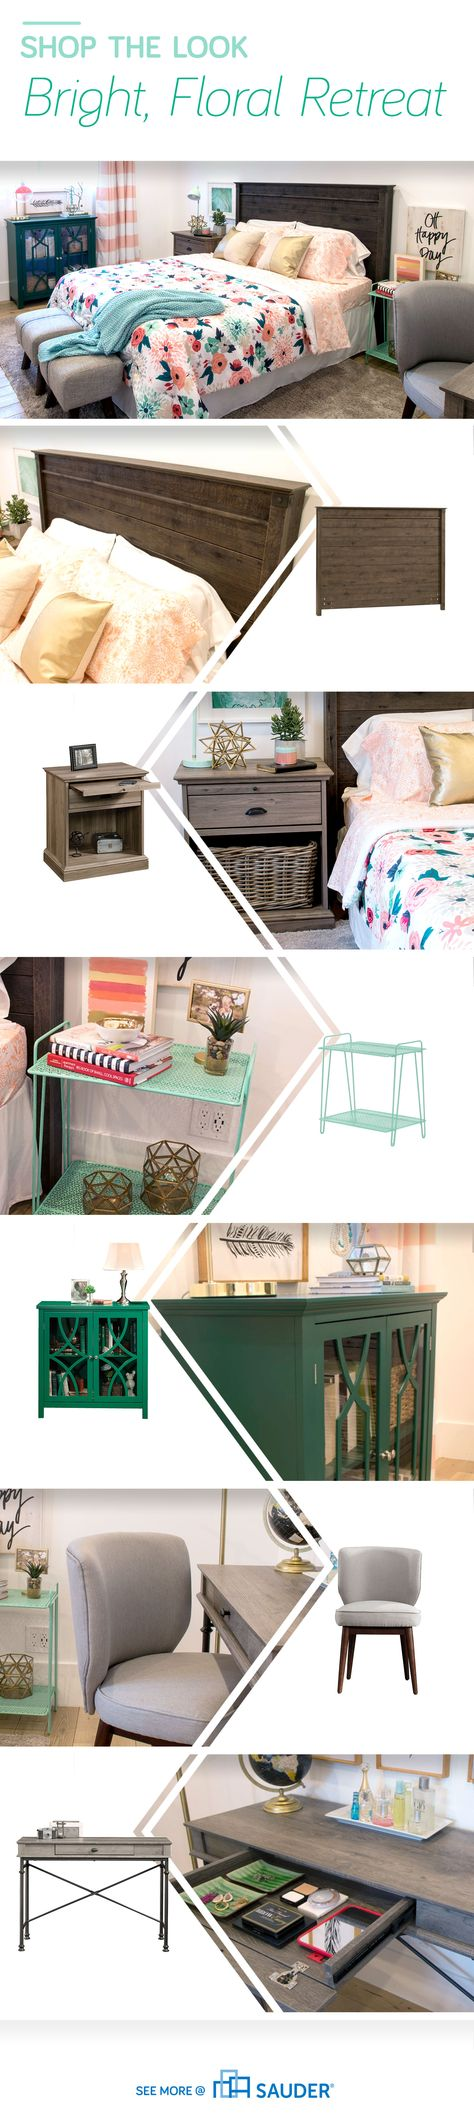 Spring is here! Hooray! Let's create a bedroom to match. Cassity Kmetzsch from Remodelaholic brought in bright colors and floral accents to her bedroom refresh. Her updated space has us feeling upbeat and cheery! We can't wait to see the flowers bloom.